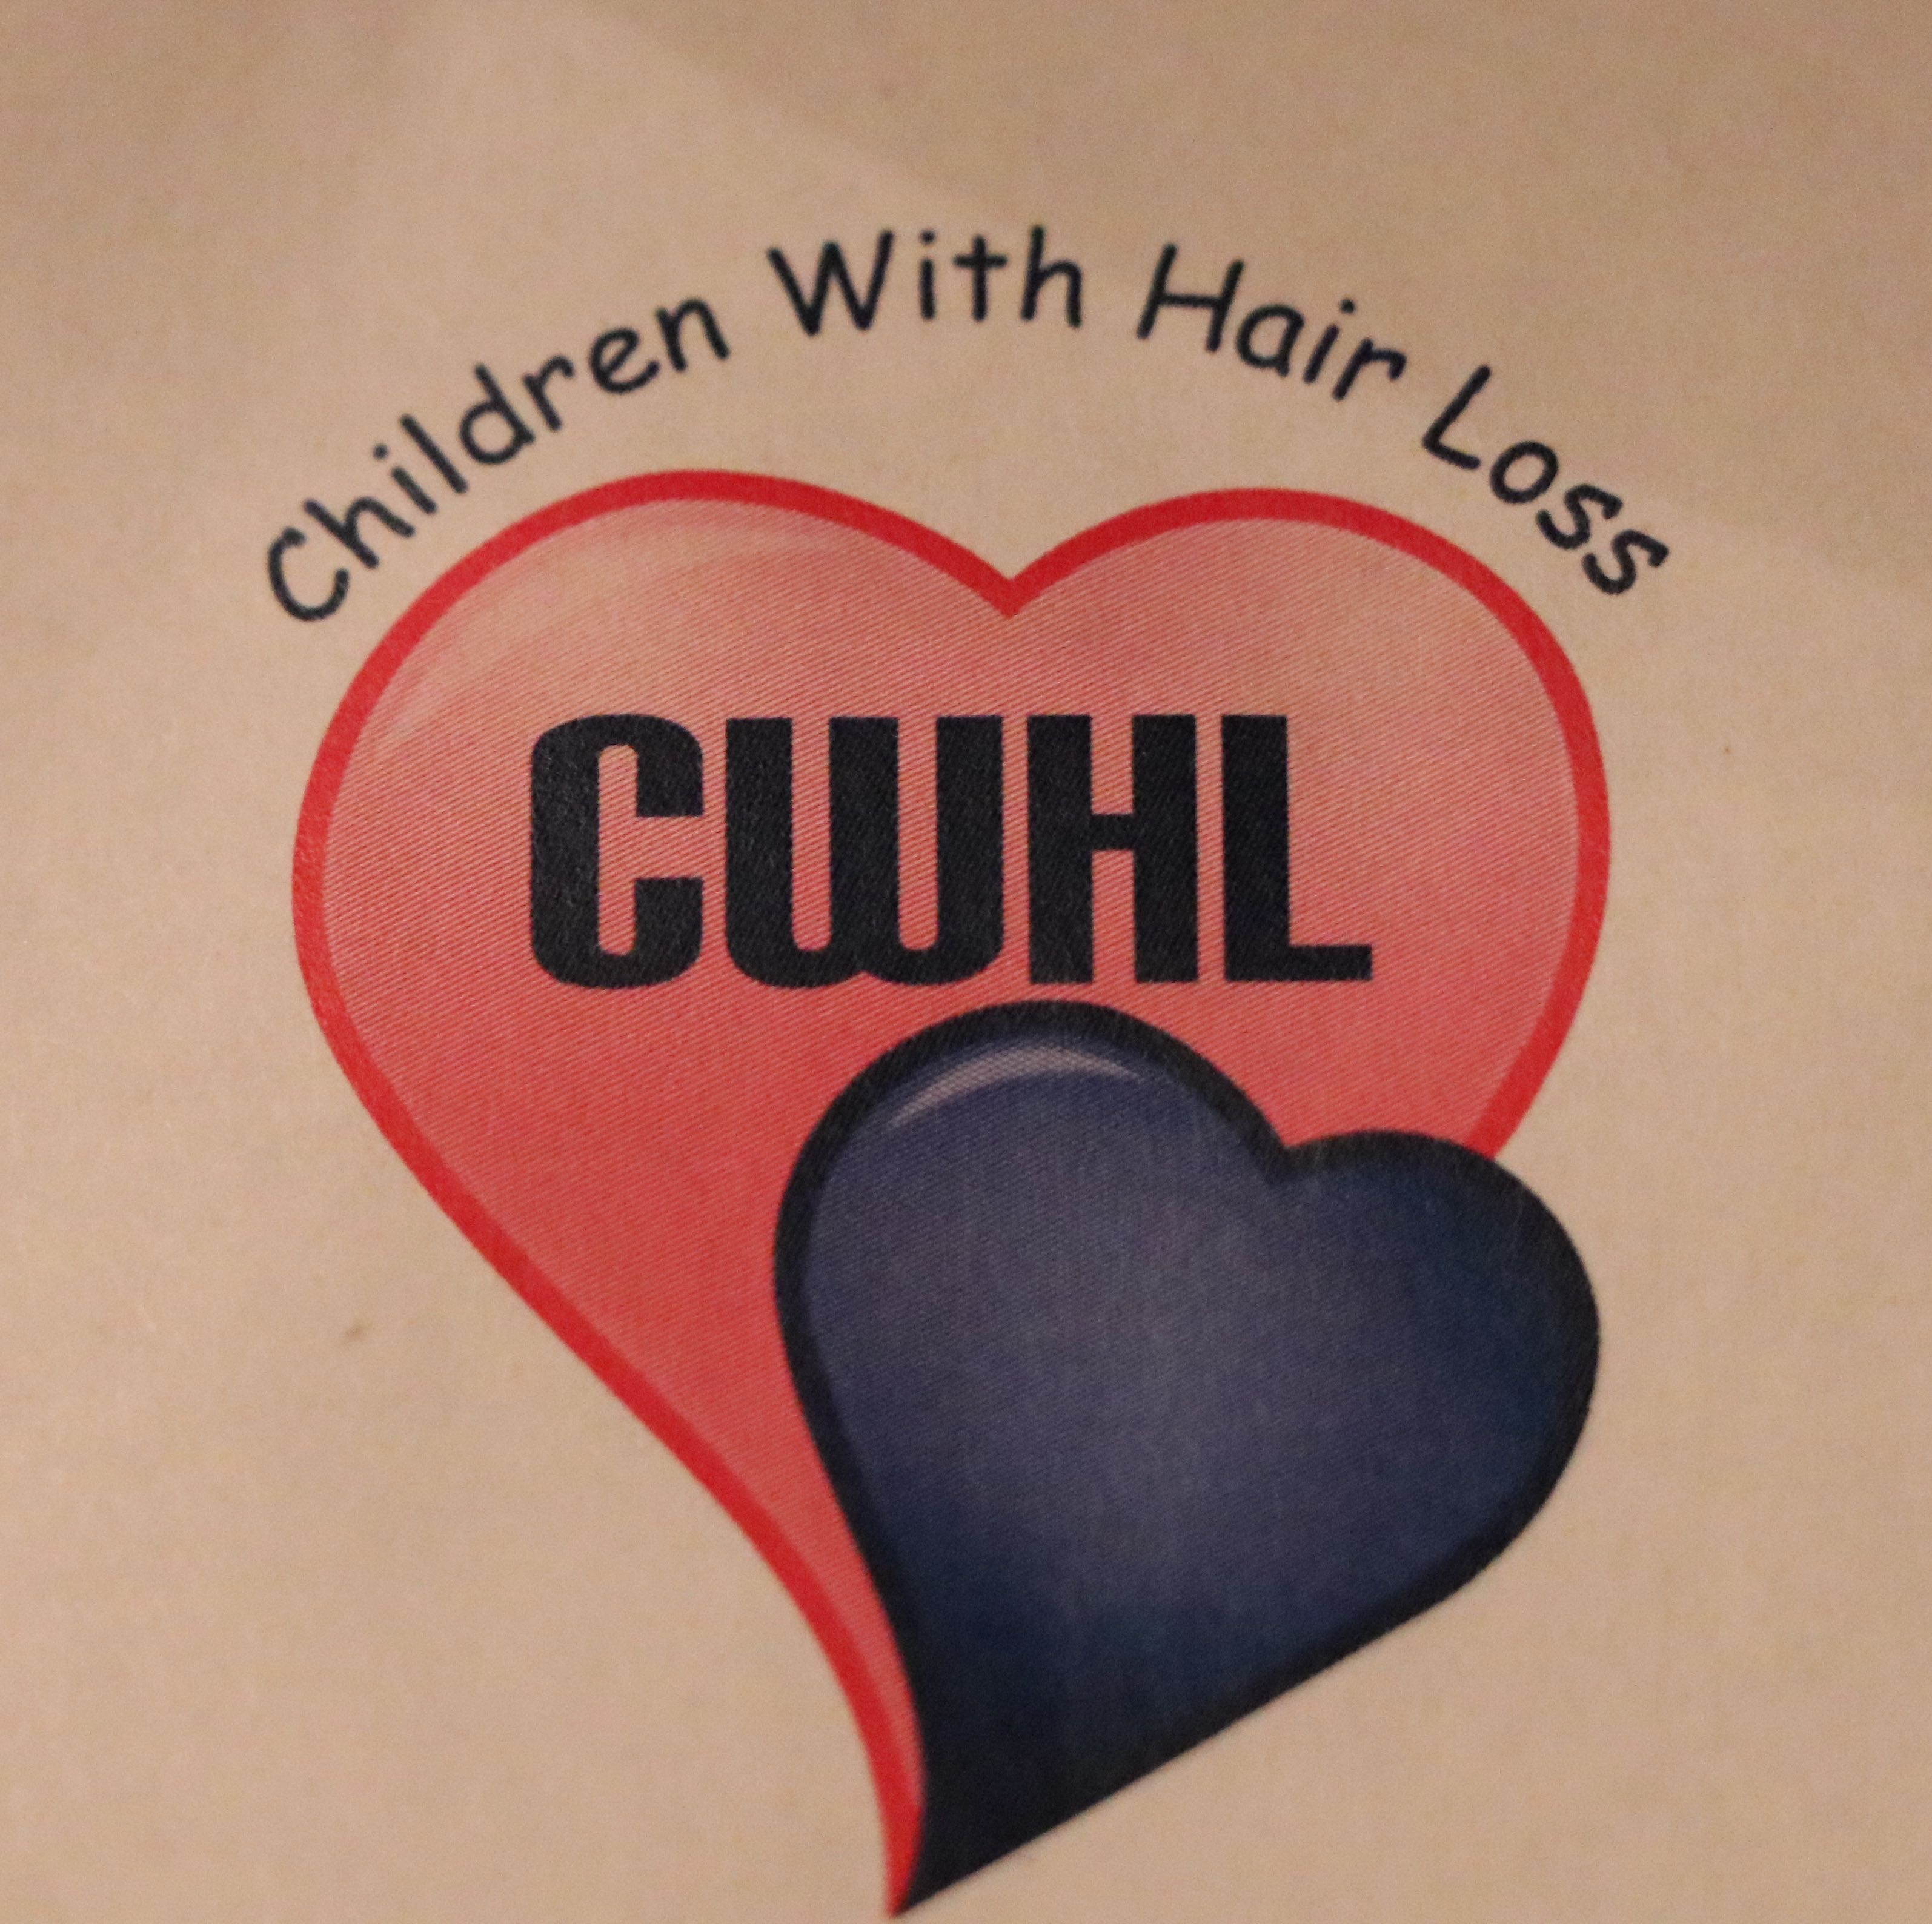 A perfect fit – Children with Hair Loss